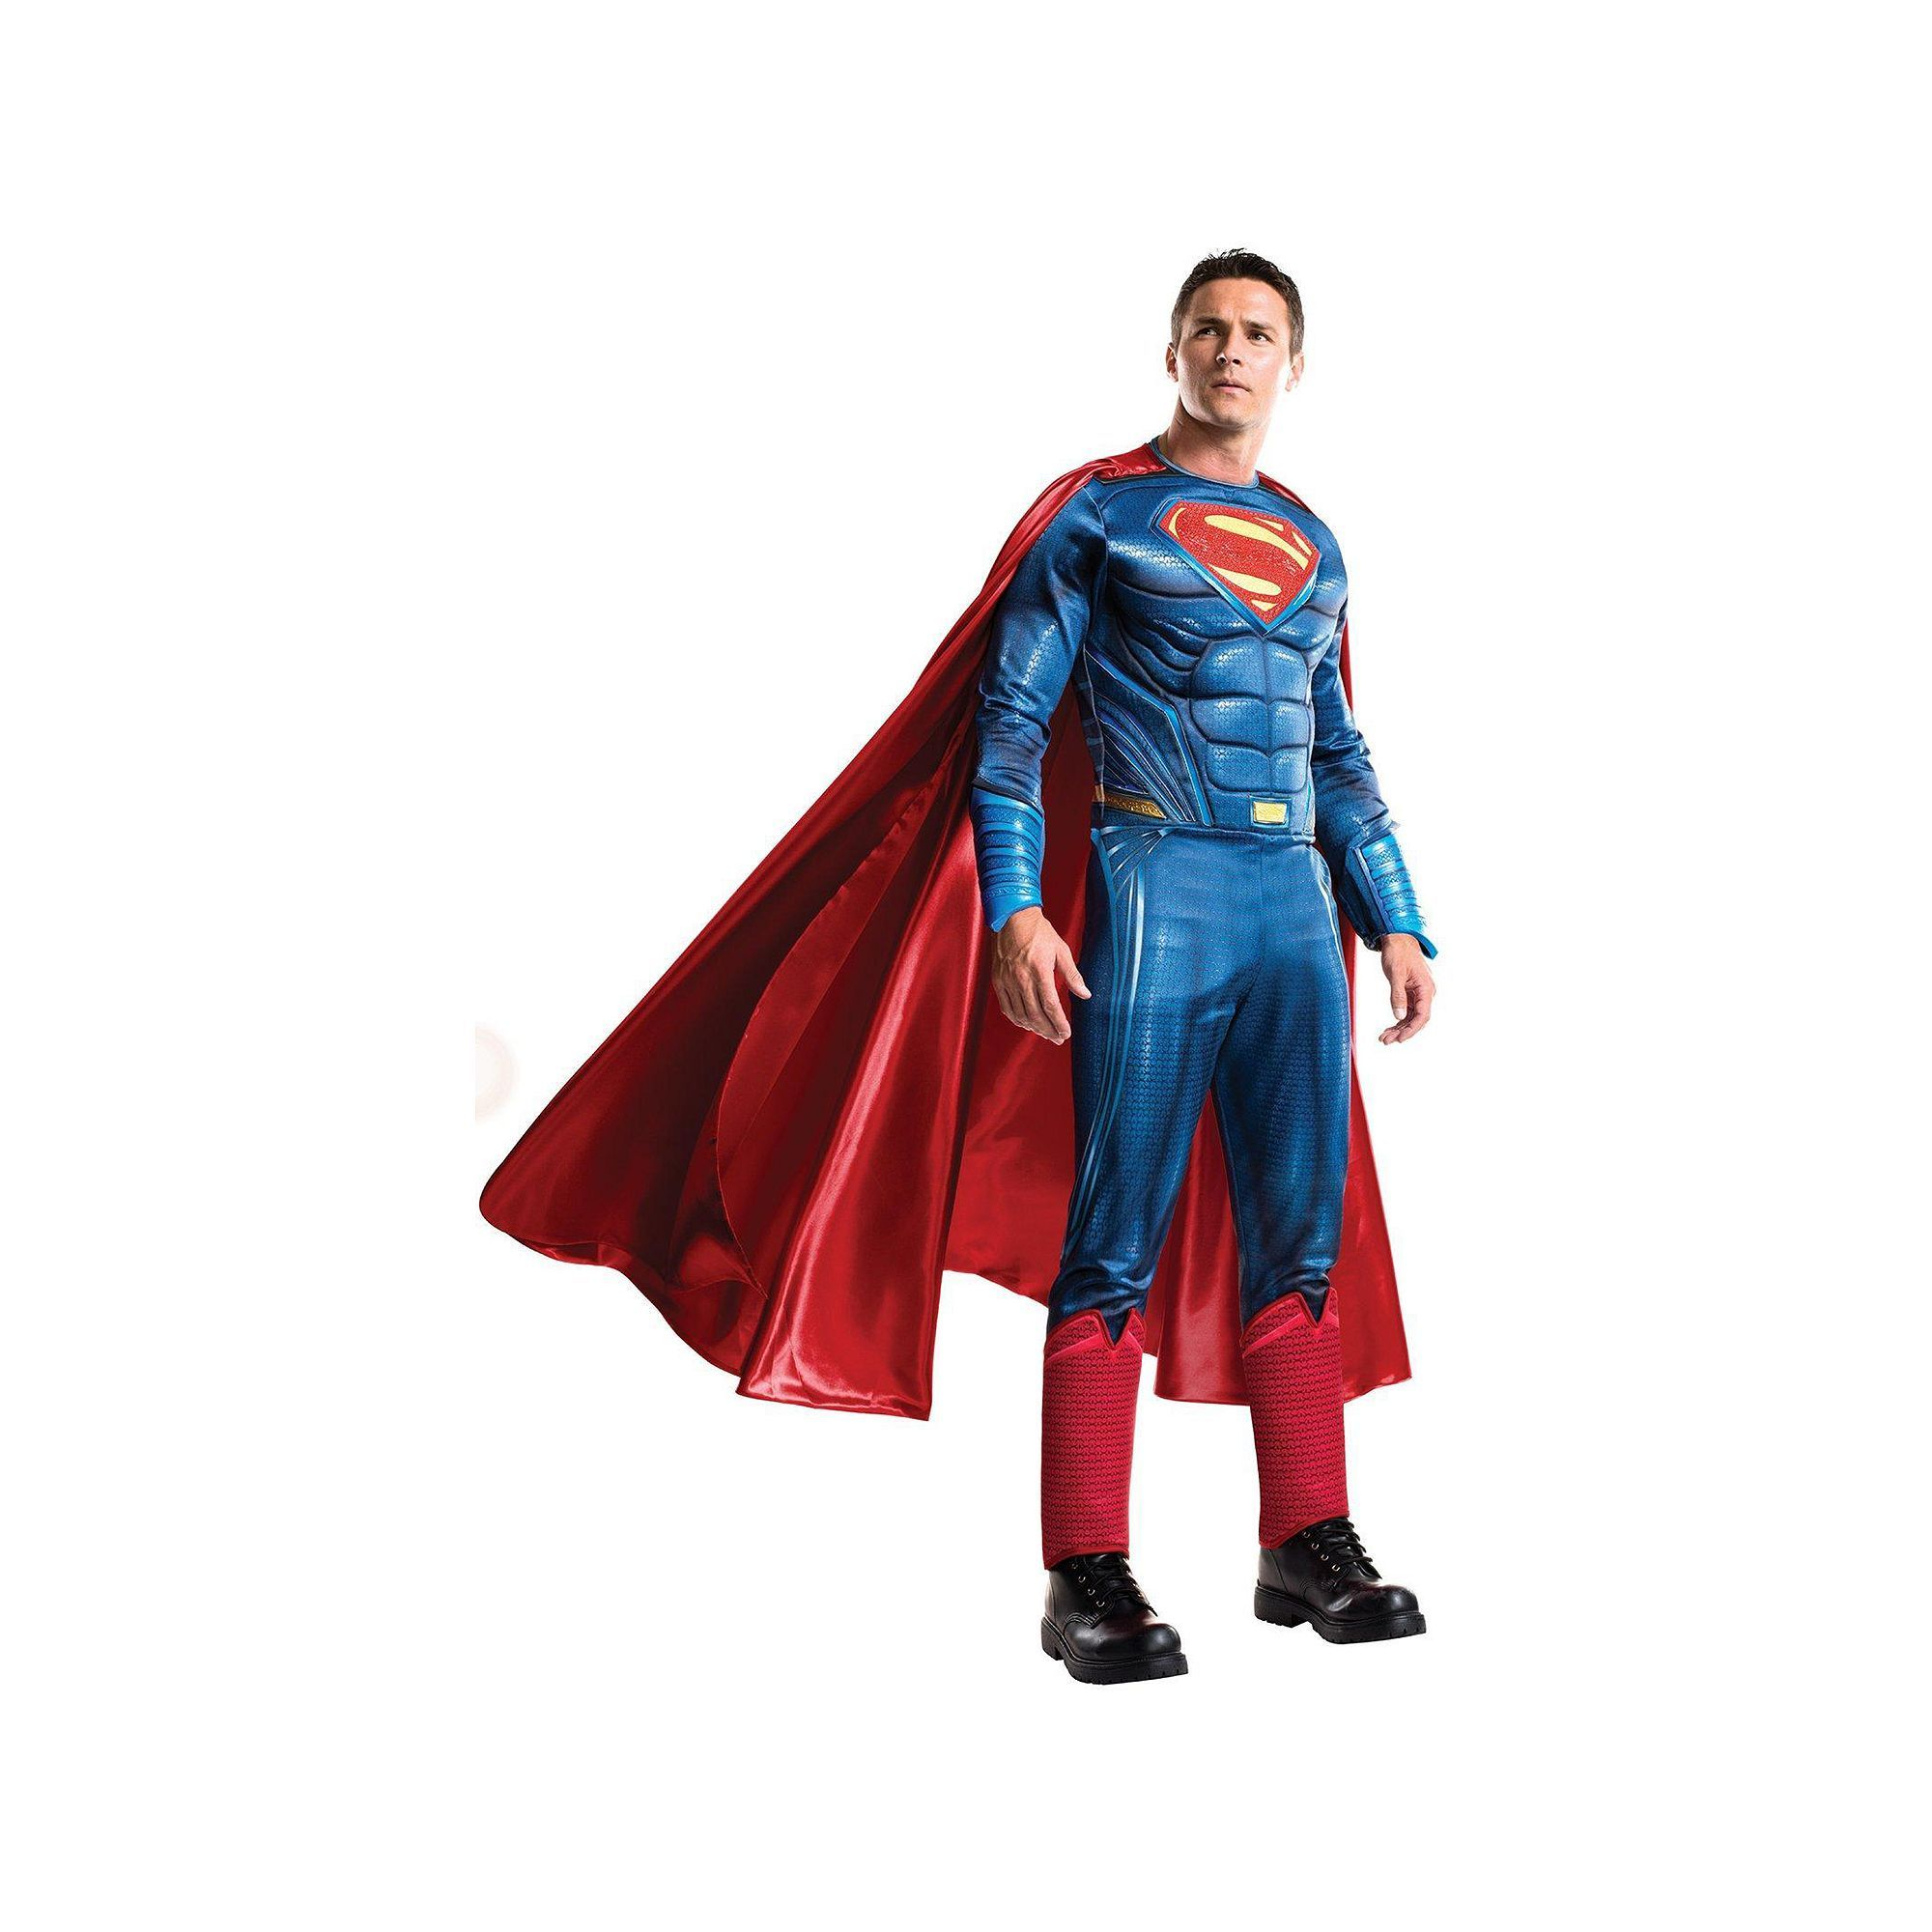 Adult Batman v Superman Dawn of Justice Grand Heritage Superman Costume Menu0027s Multicolor  sc 1 st  Pinterest & Adult Batman v Superman: Dawn of Justice Grand Heritage Superman ...